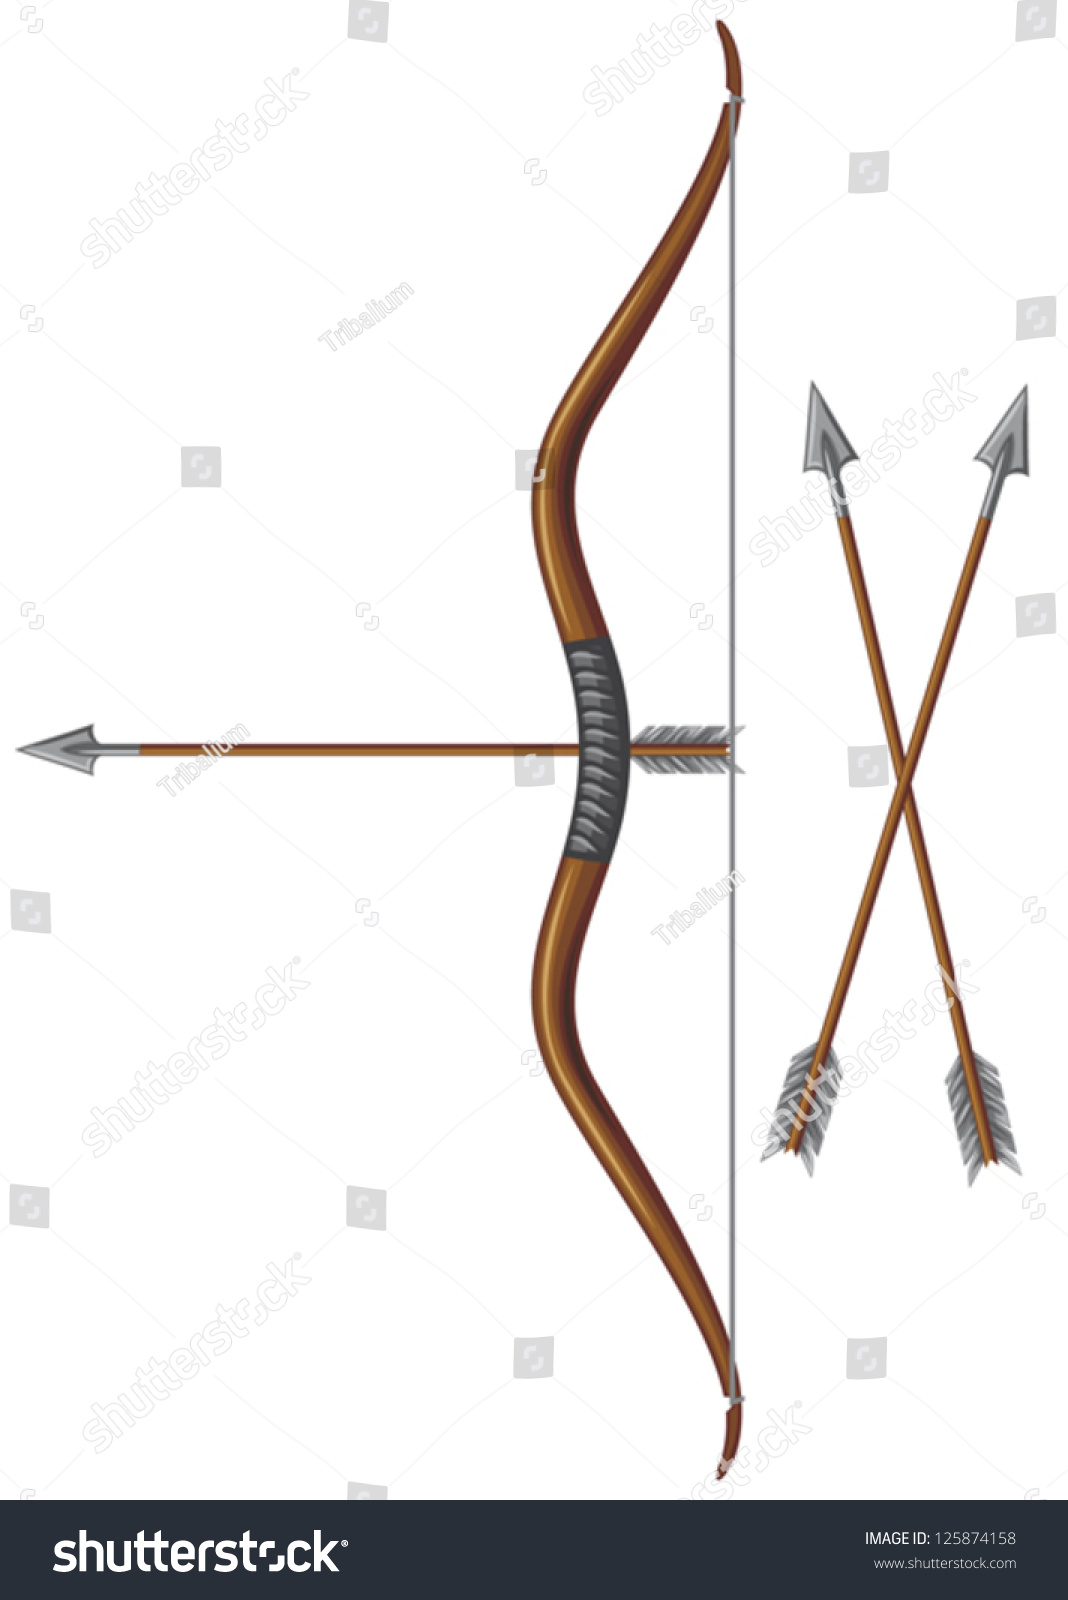 Bow And Arrow Stock Vector Illustration 125874158 ...